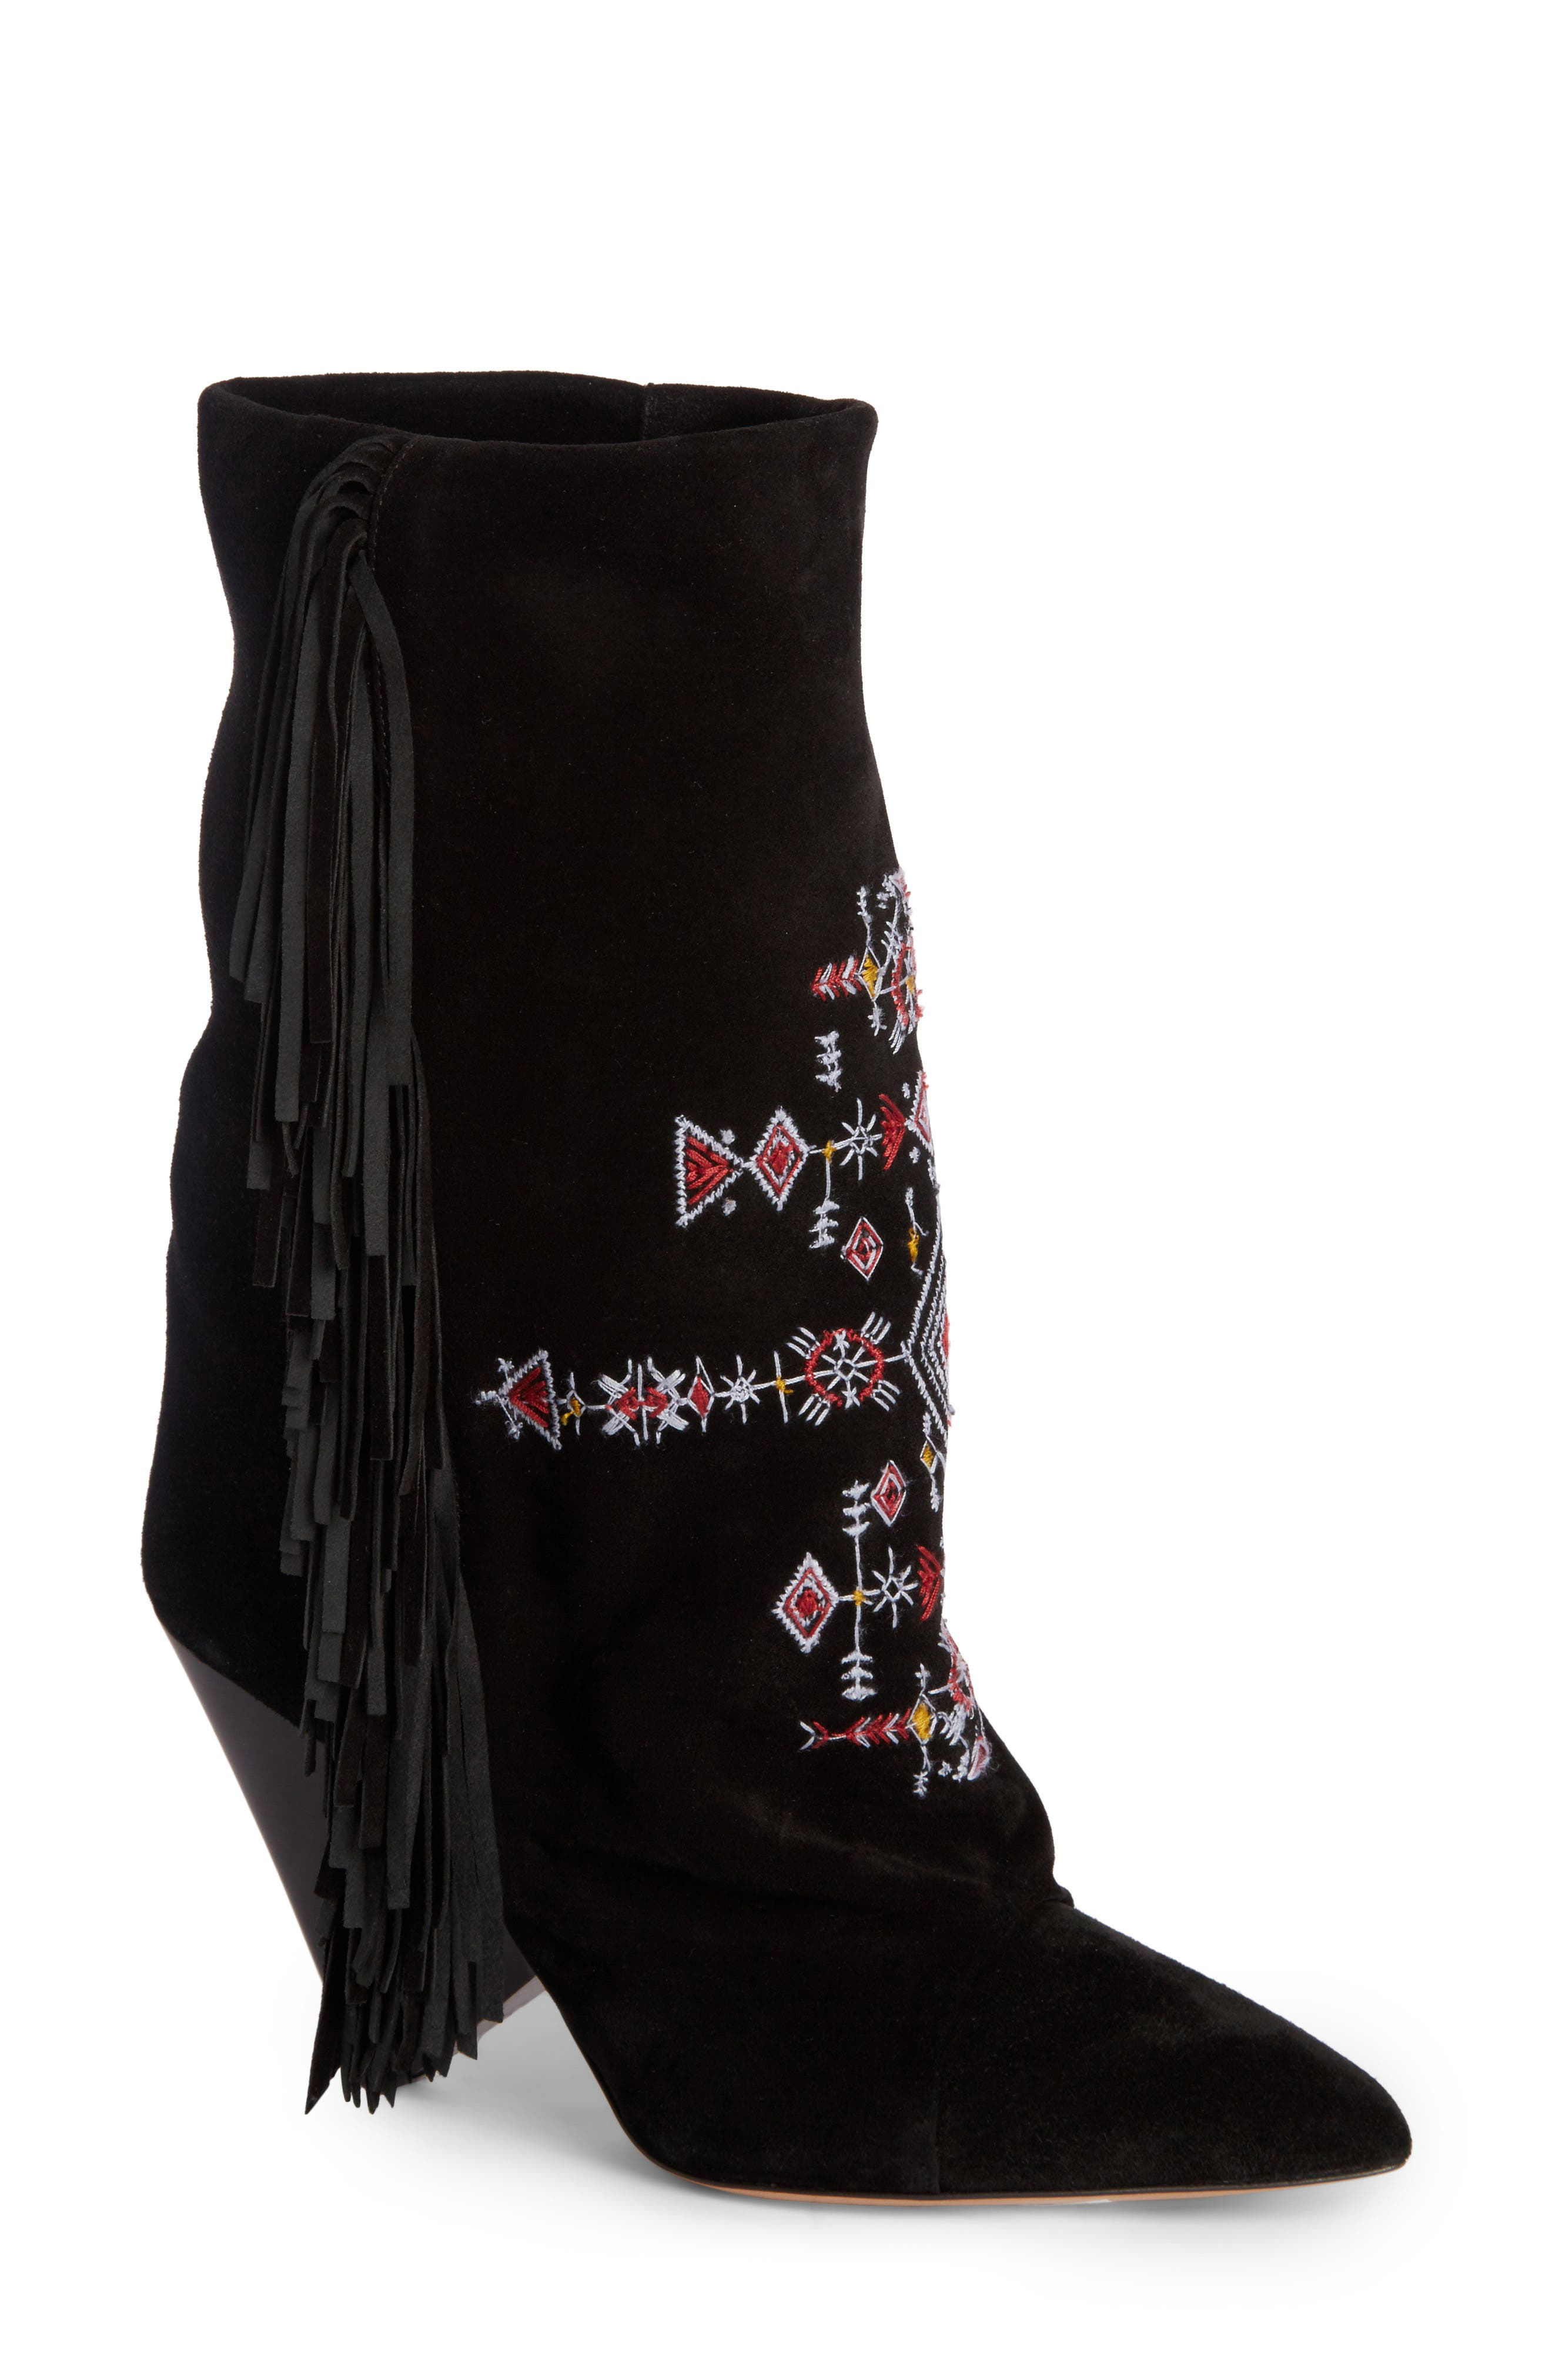 Alternate Image 1 Selected - Isabel Marant Lesten Embroidered Fringe Boot (Women)